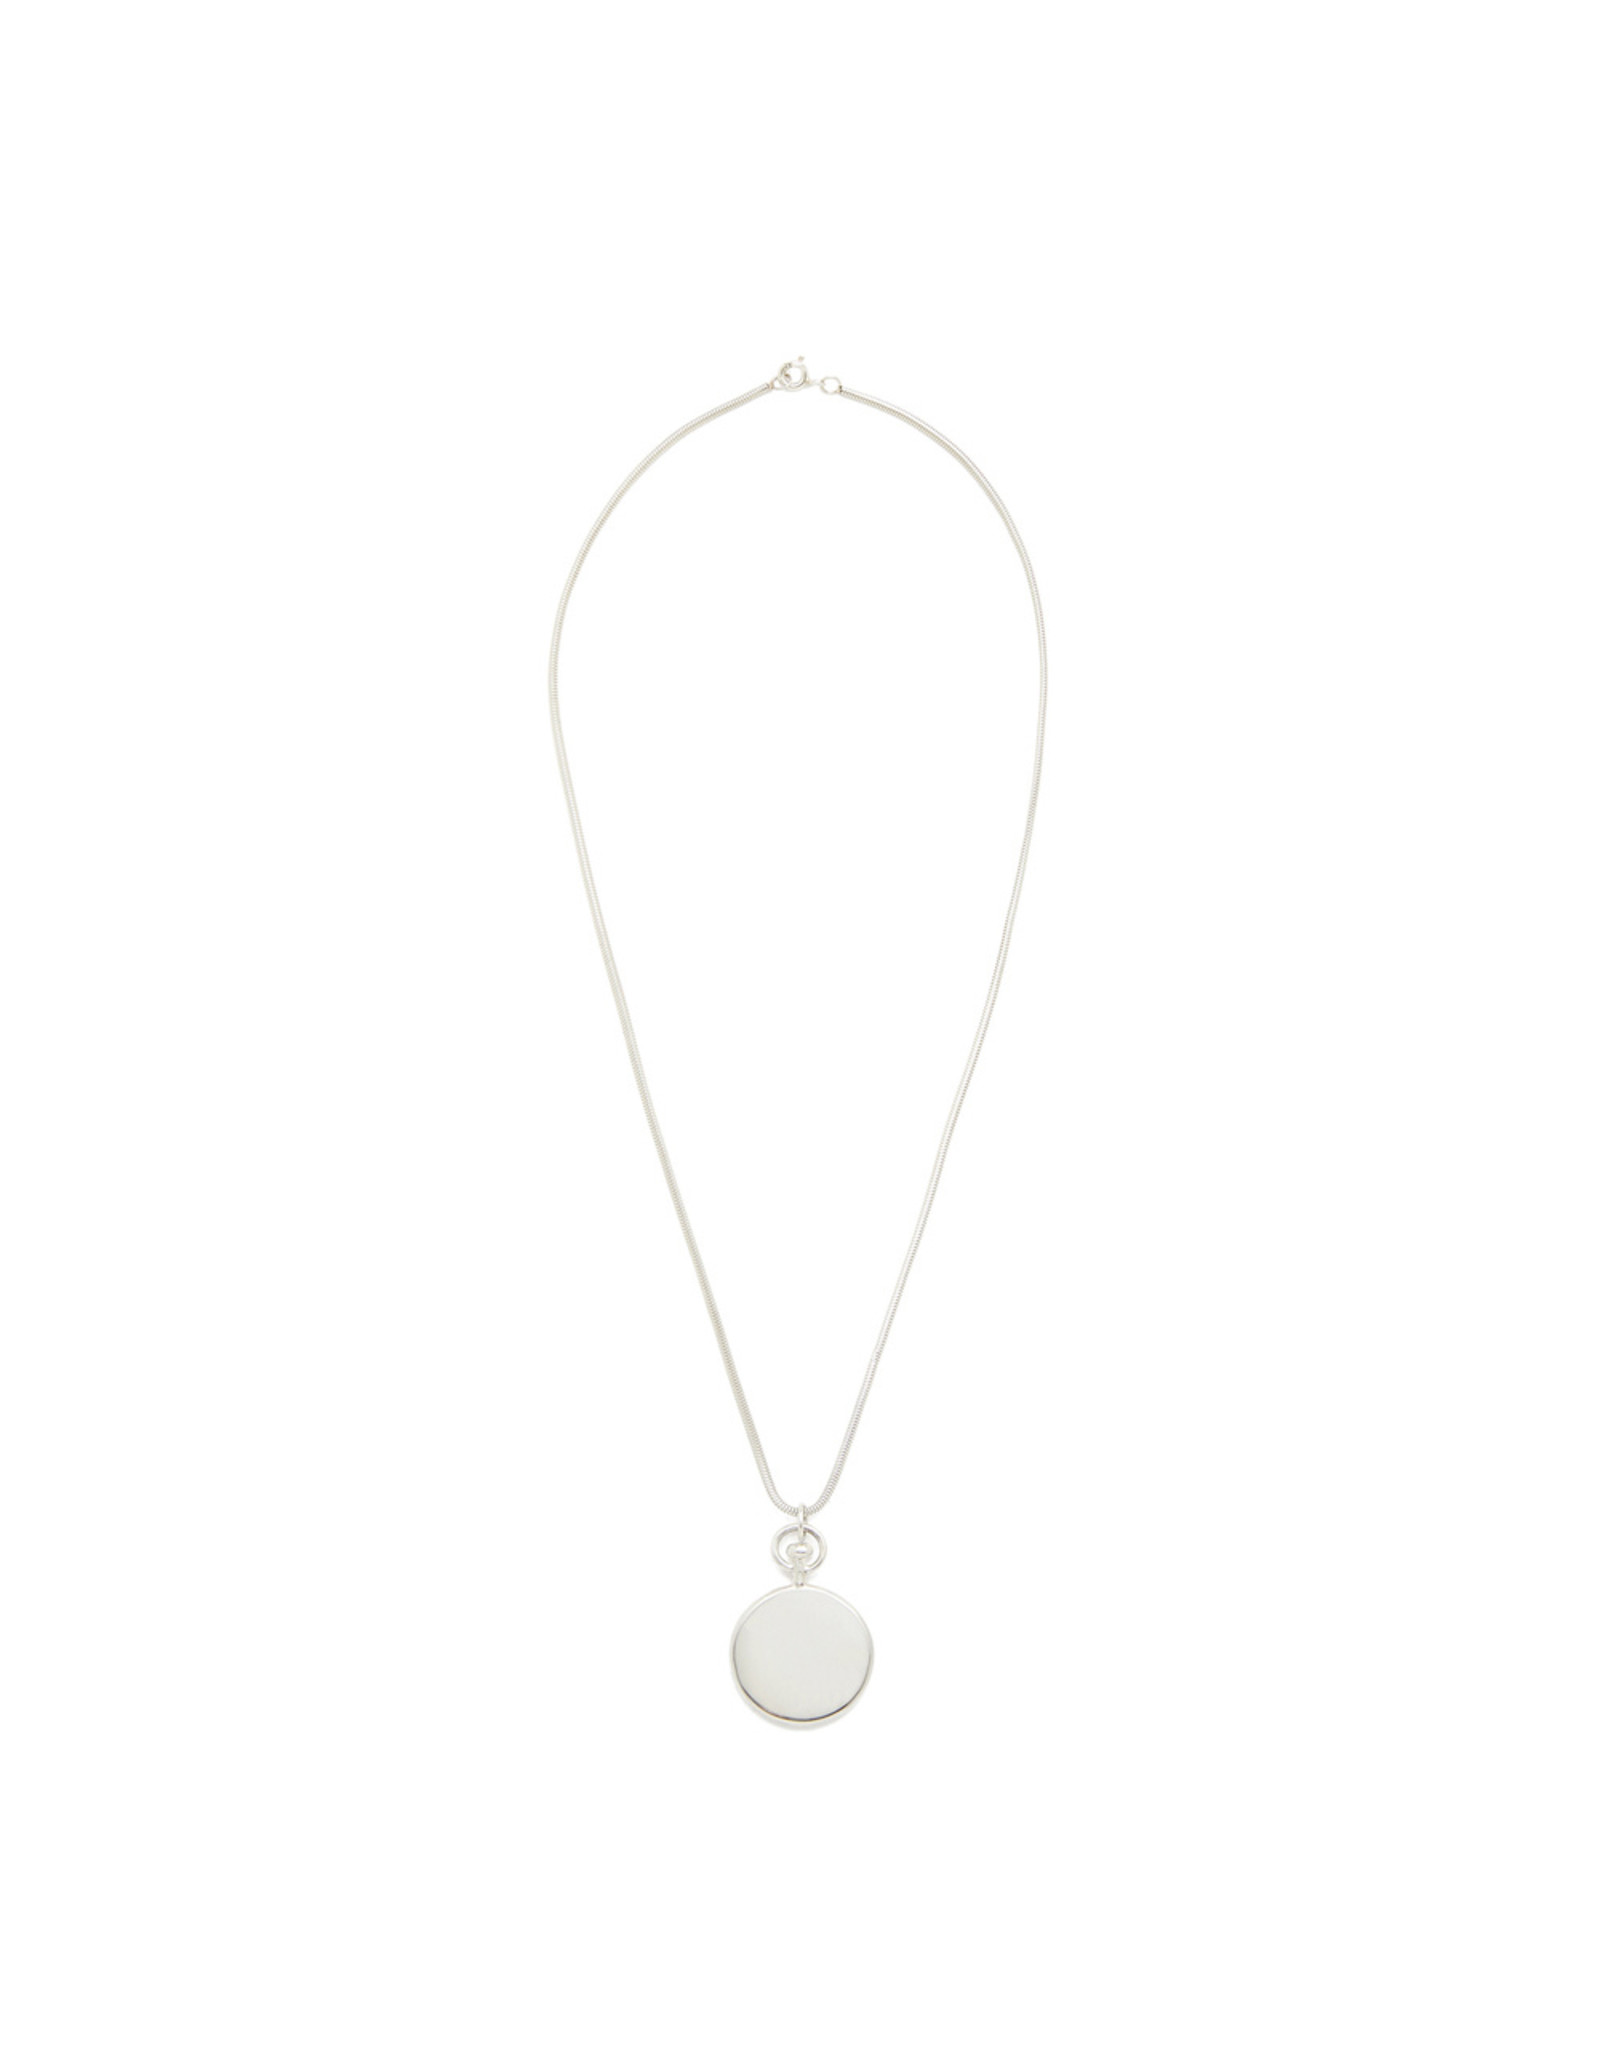 Sophie Buhai Sophie Buhai Small Circle Sterling-Silver Pendant (Color: Sterling Silver)